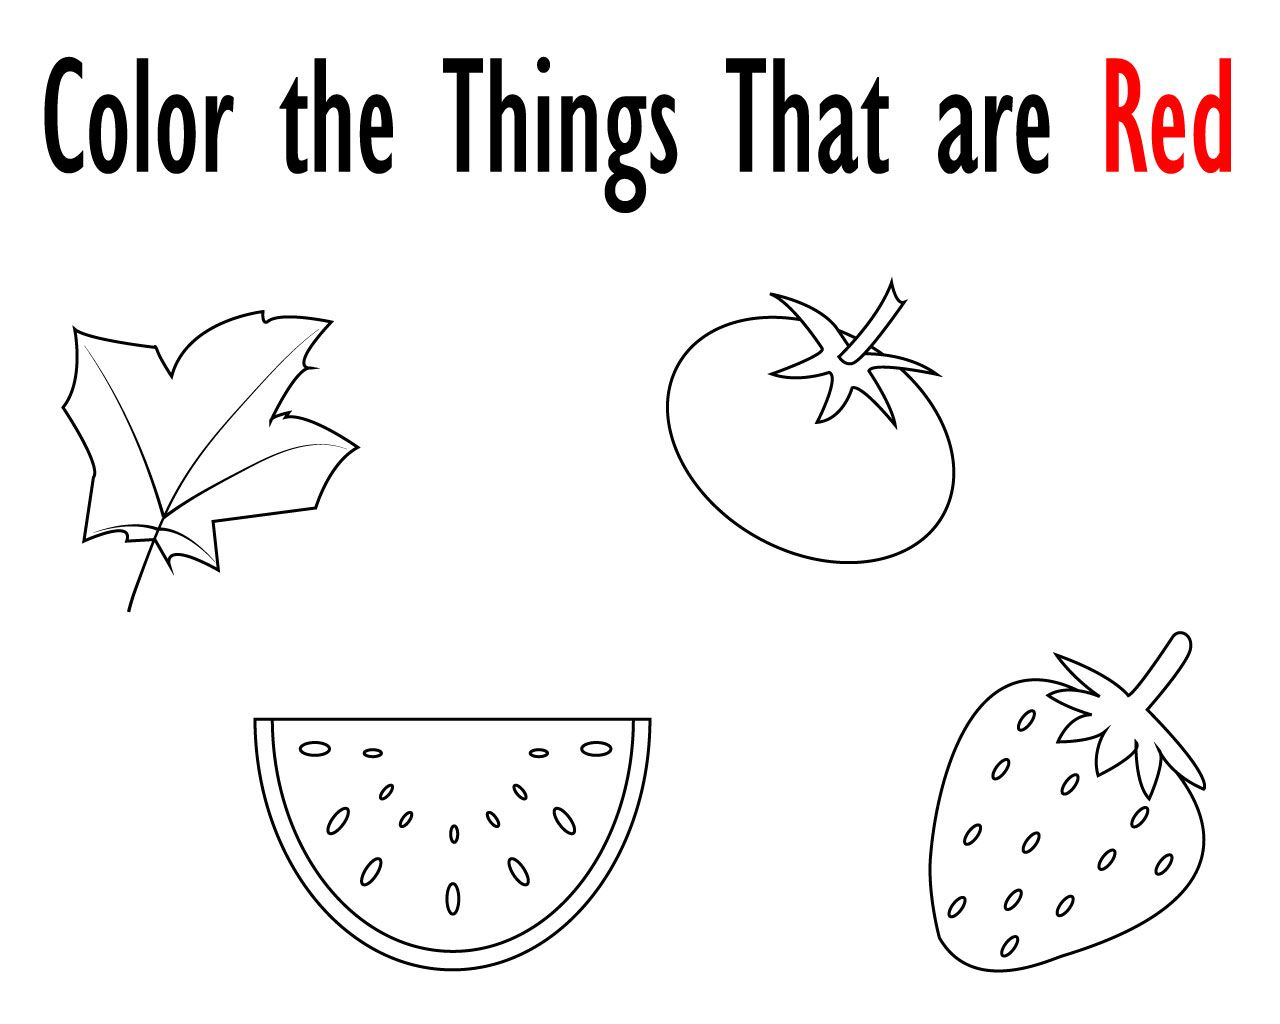 Red Coloring Pages For Toddlers Coloring Pages Heart Coloring Pages Apple Coloring Pages